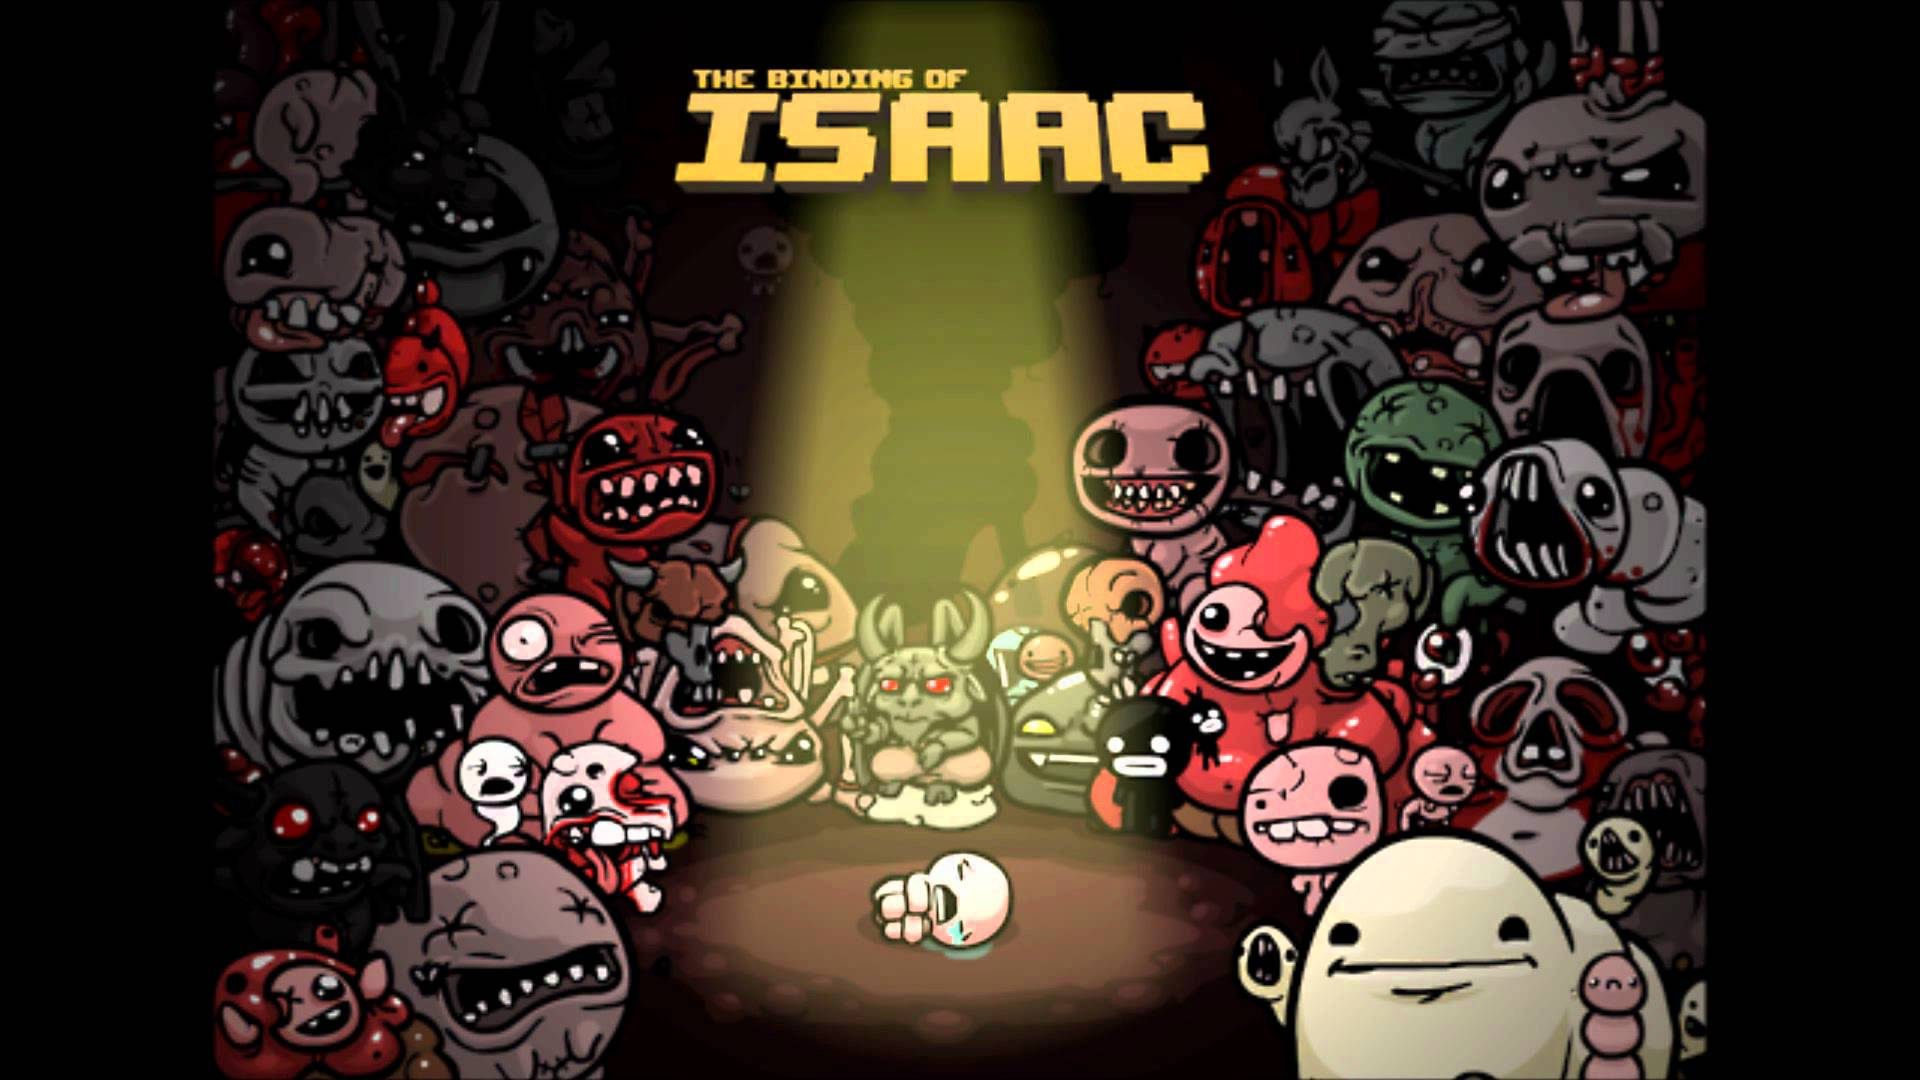 The binding of isaac: afterbirth+ free download (sep 09, 2018.